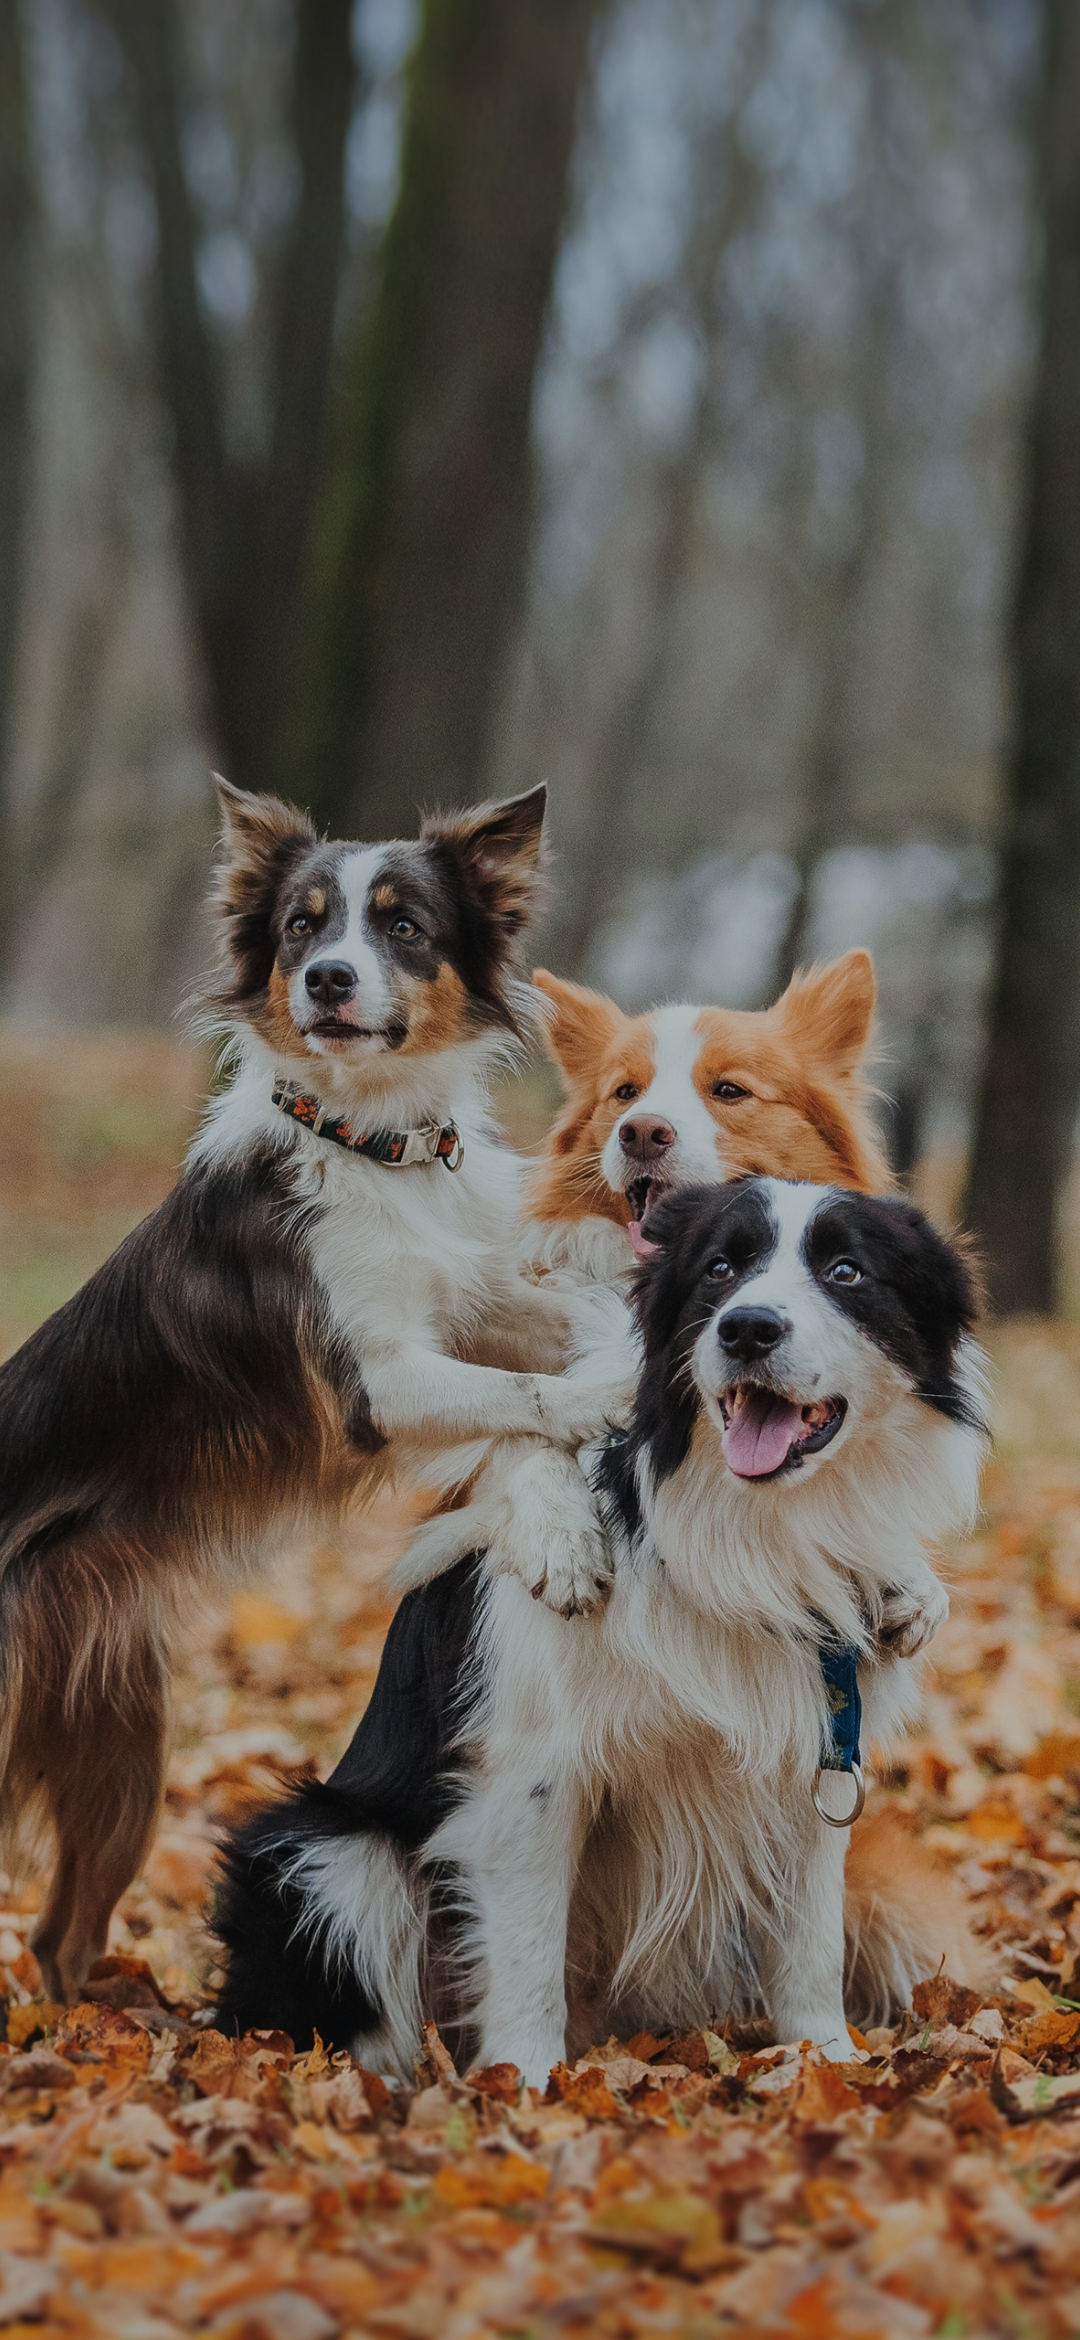 A pack of pet dogs